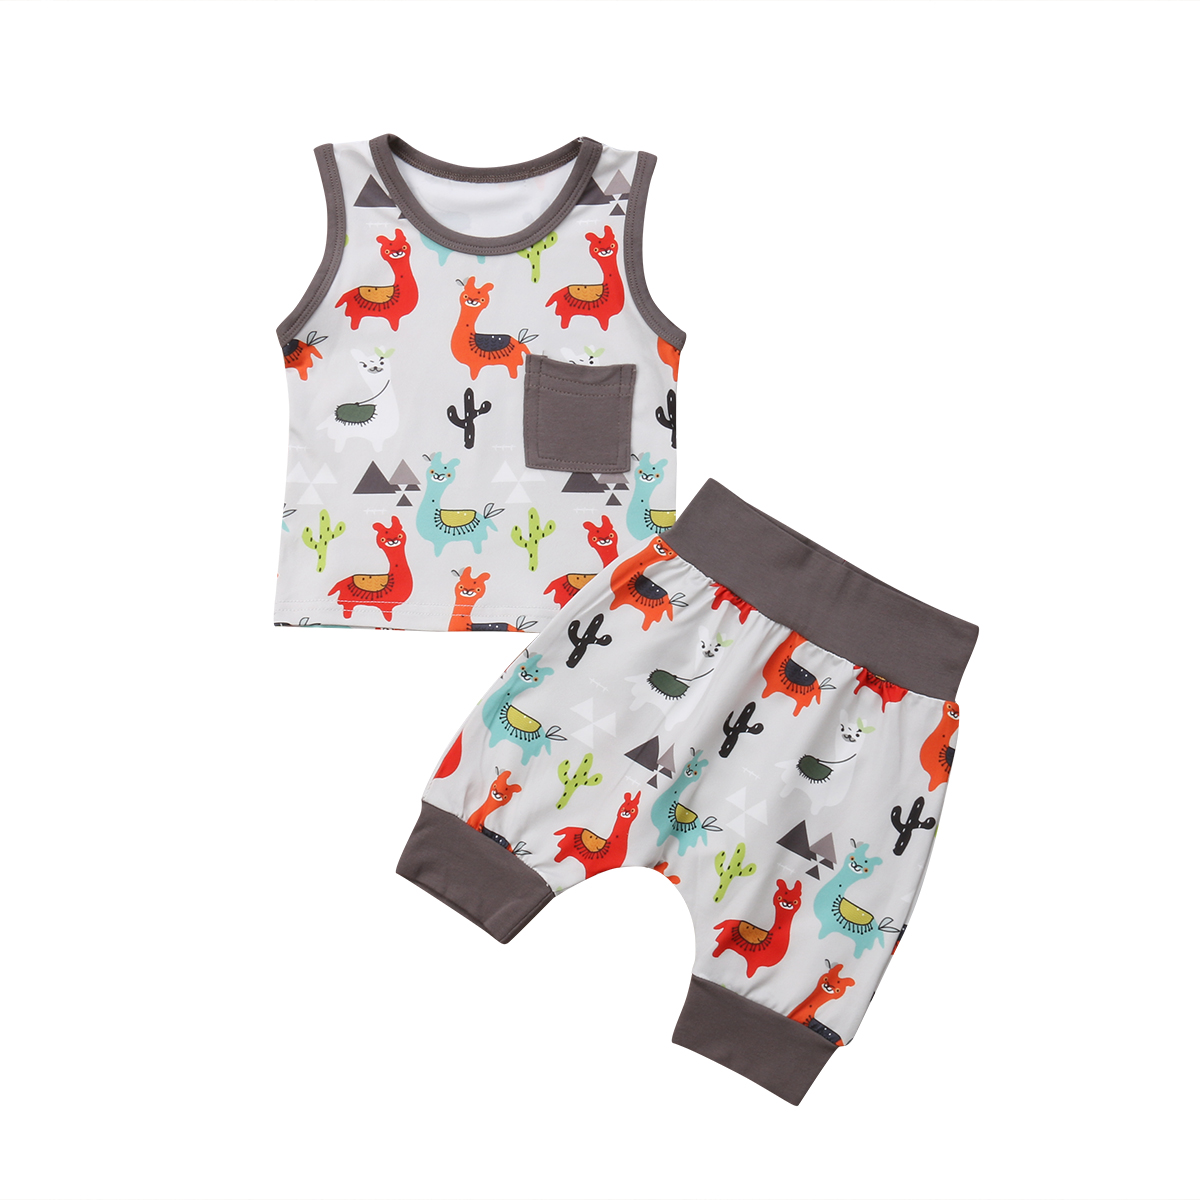 2PCS Causal Baby Girl Boy Summer Hot Sale Clothes Sleeveless Cute Animal Pattern Vest+Fashion Harem Pants Outfit